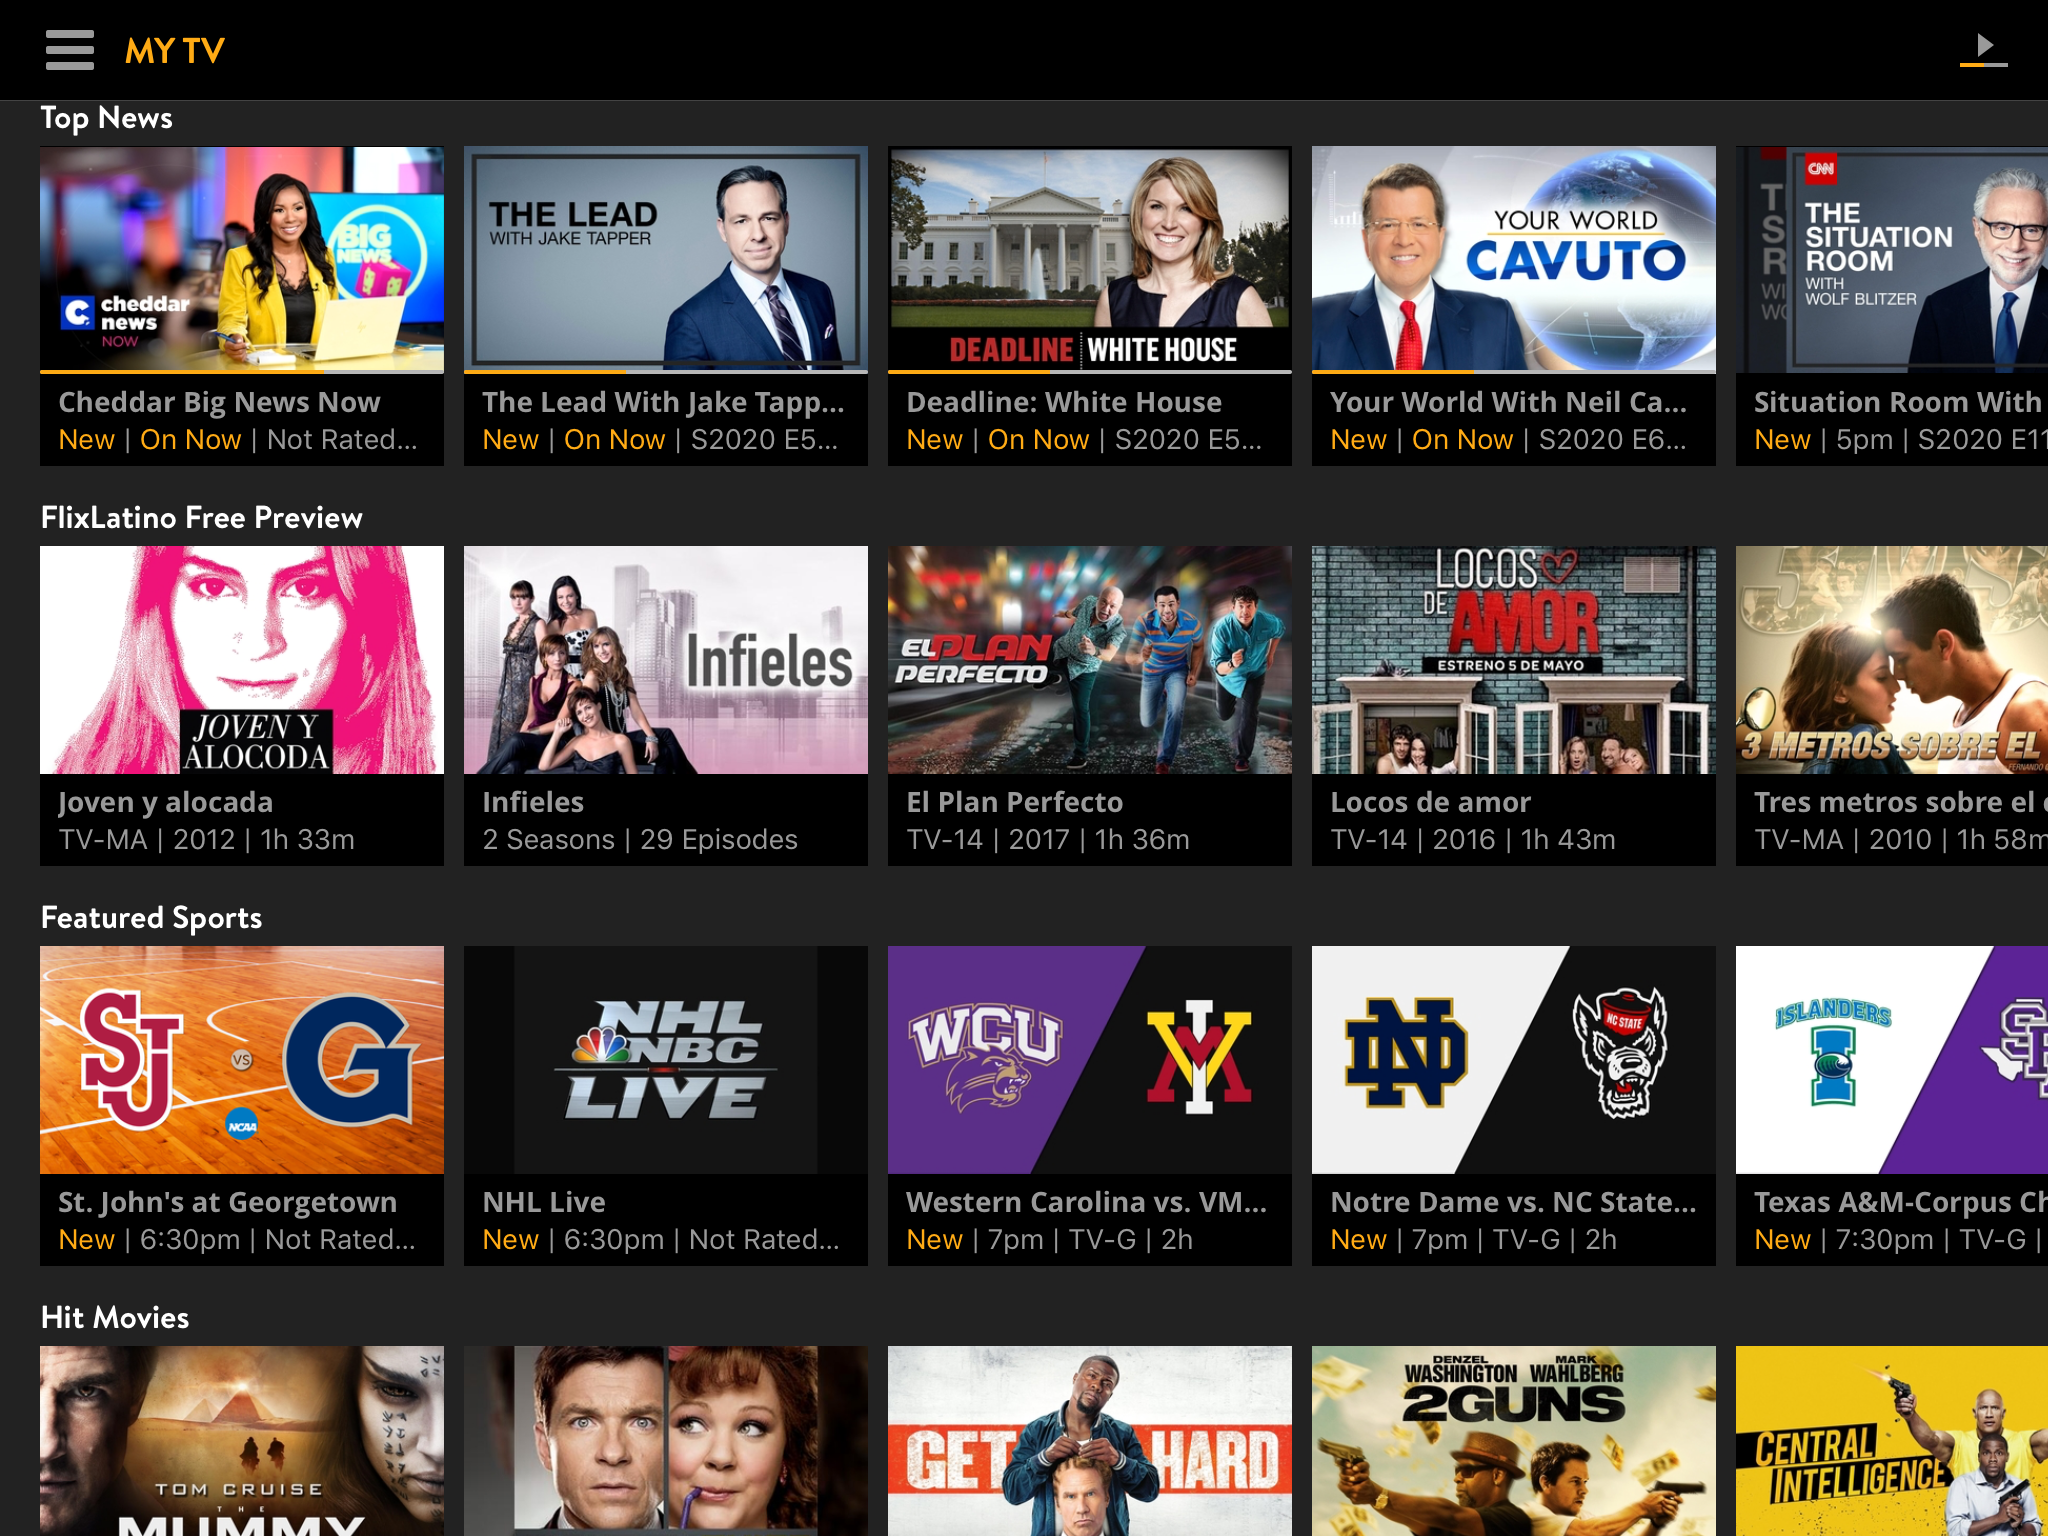 How does Sling TV for $30 compare to $65 for YouTube TV?